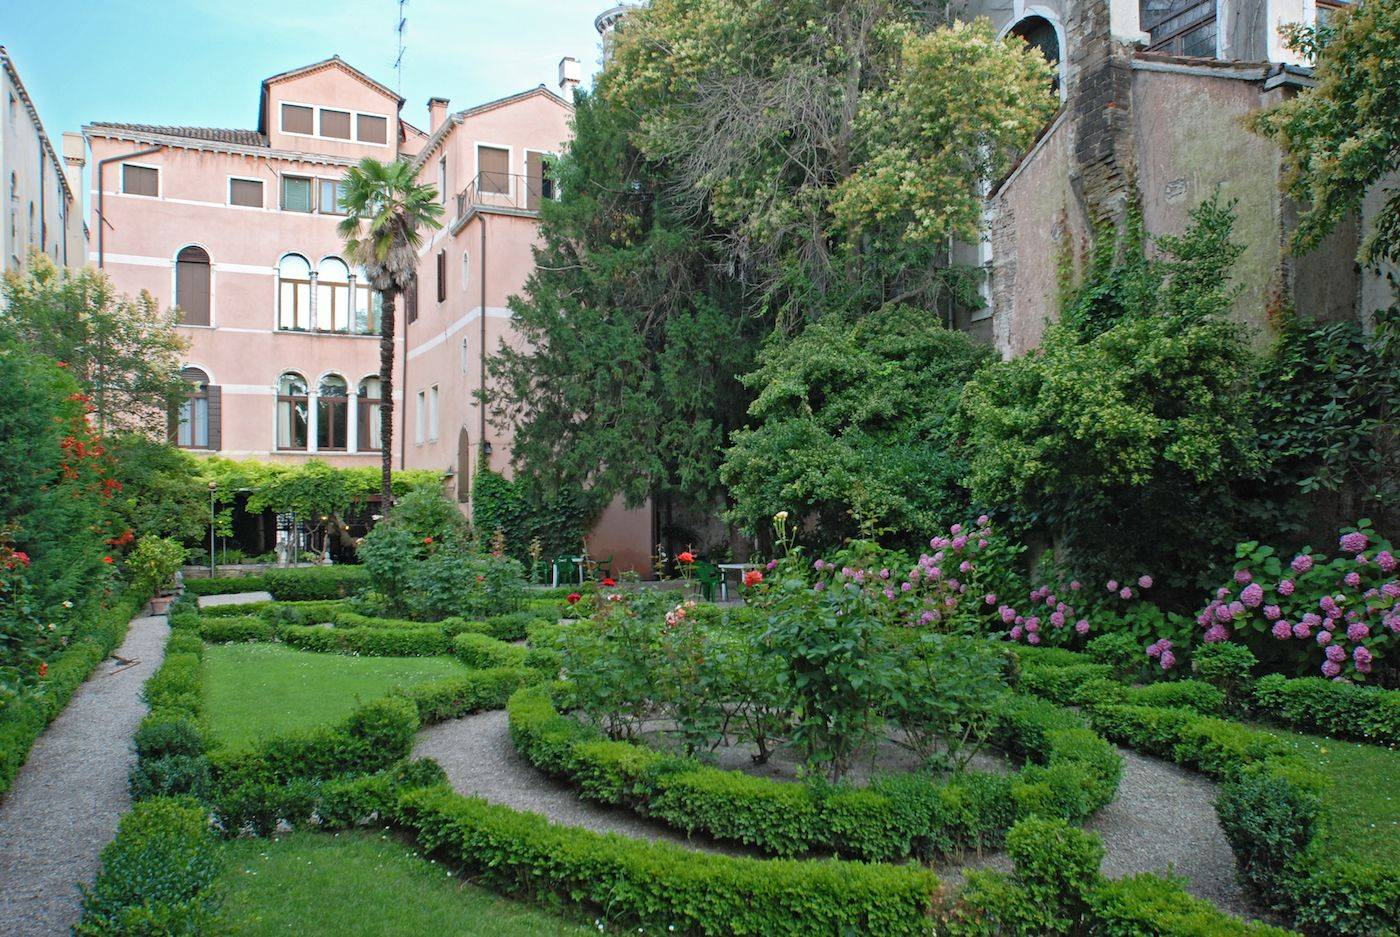 the amazing secret garden of the palace is accessible on request